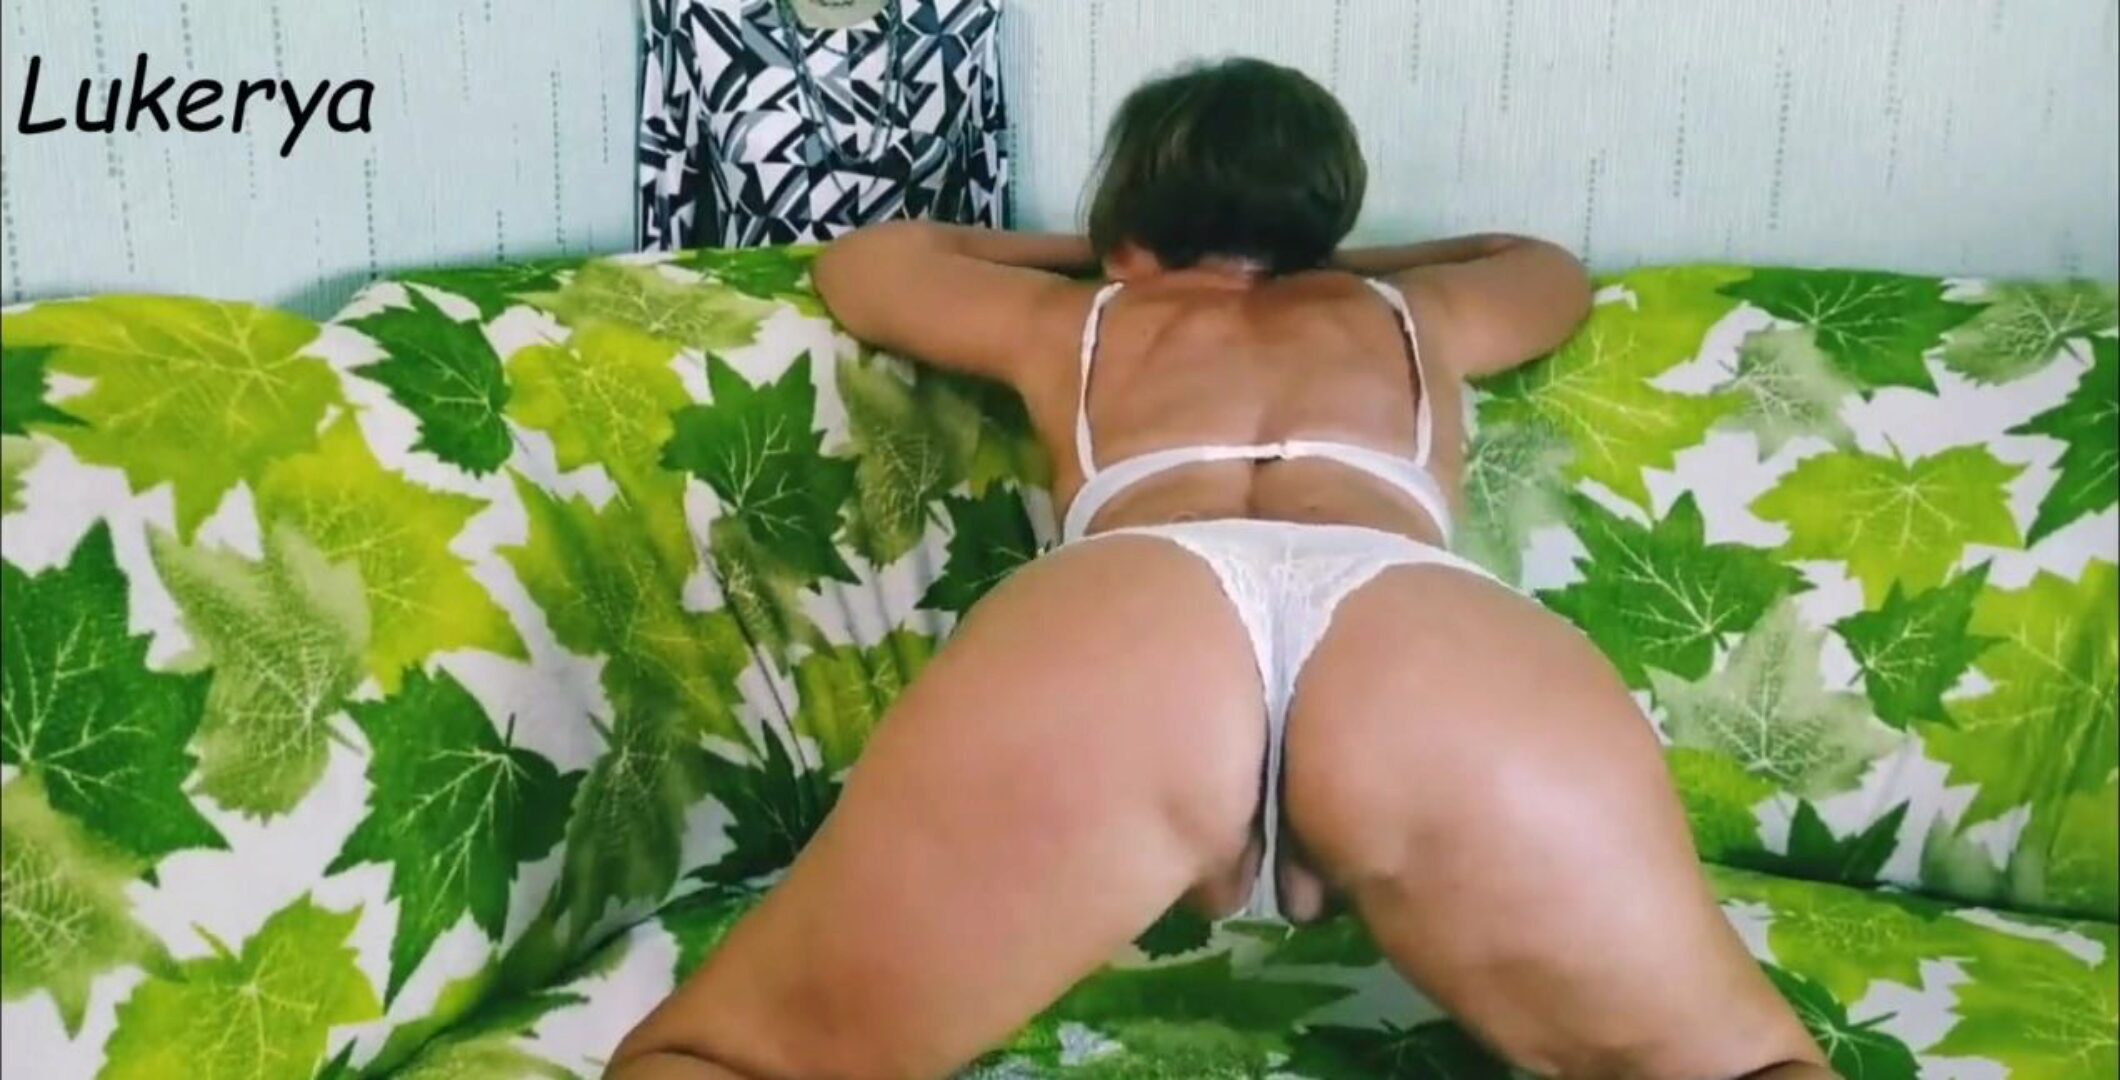 Big wazoo jiggling Lonely Housewife Shakes Her Big Ass, Spanks It And Shows Her Sexy Feet.